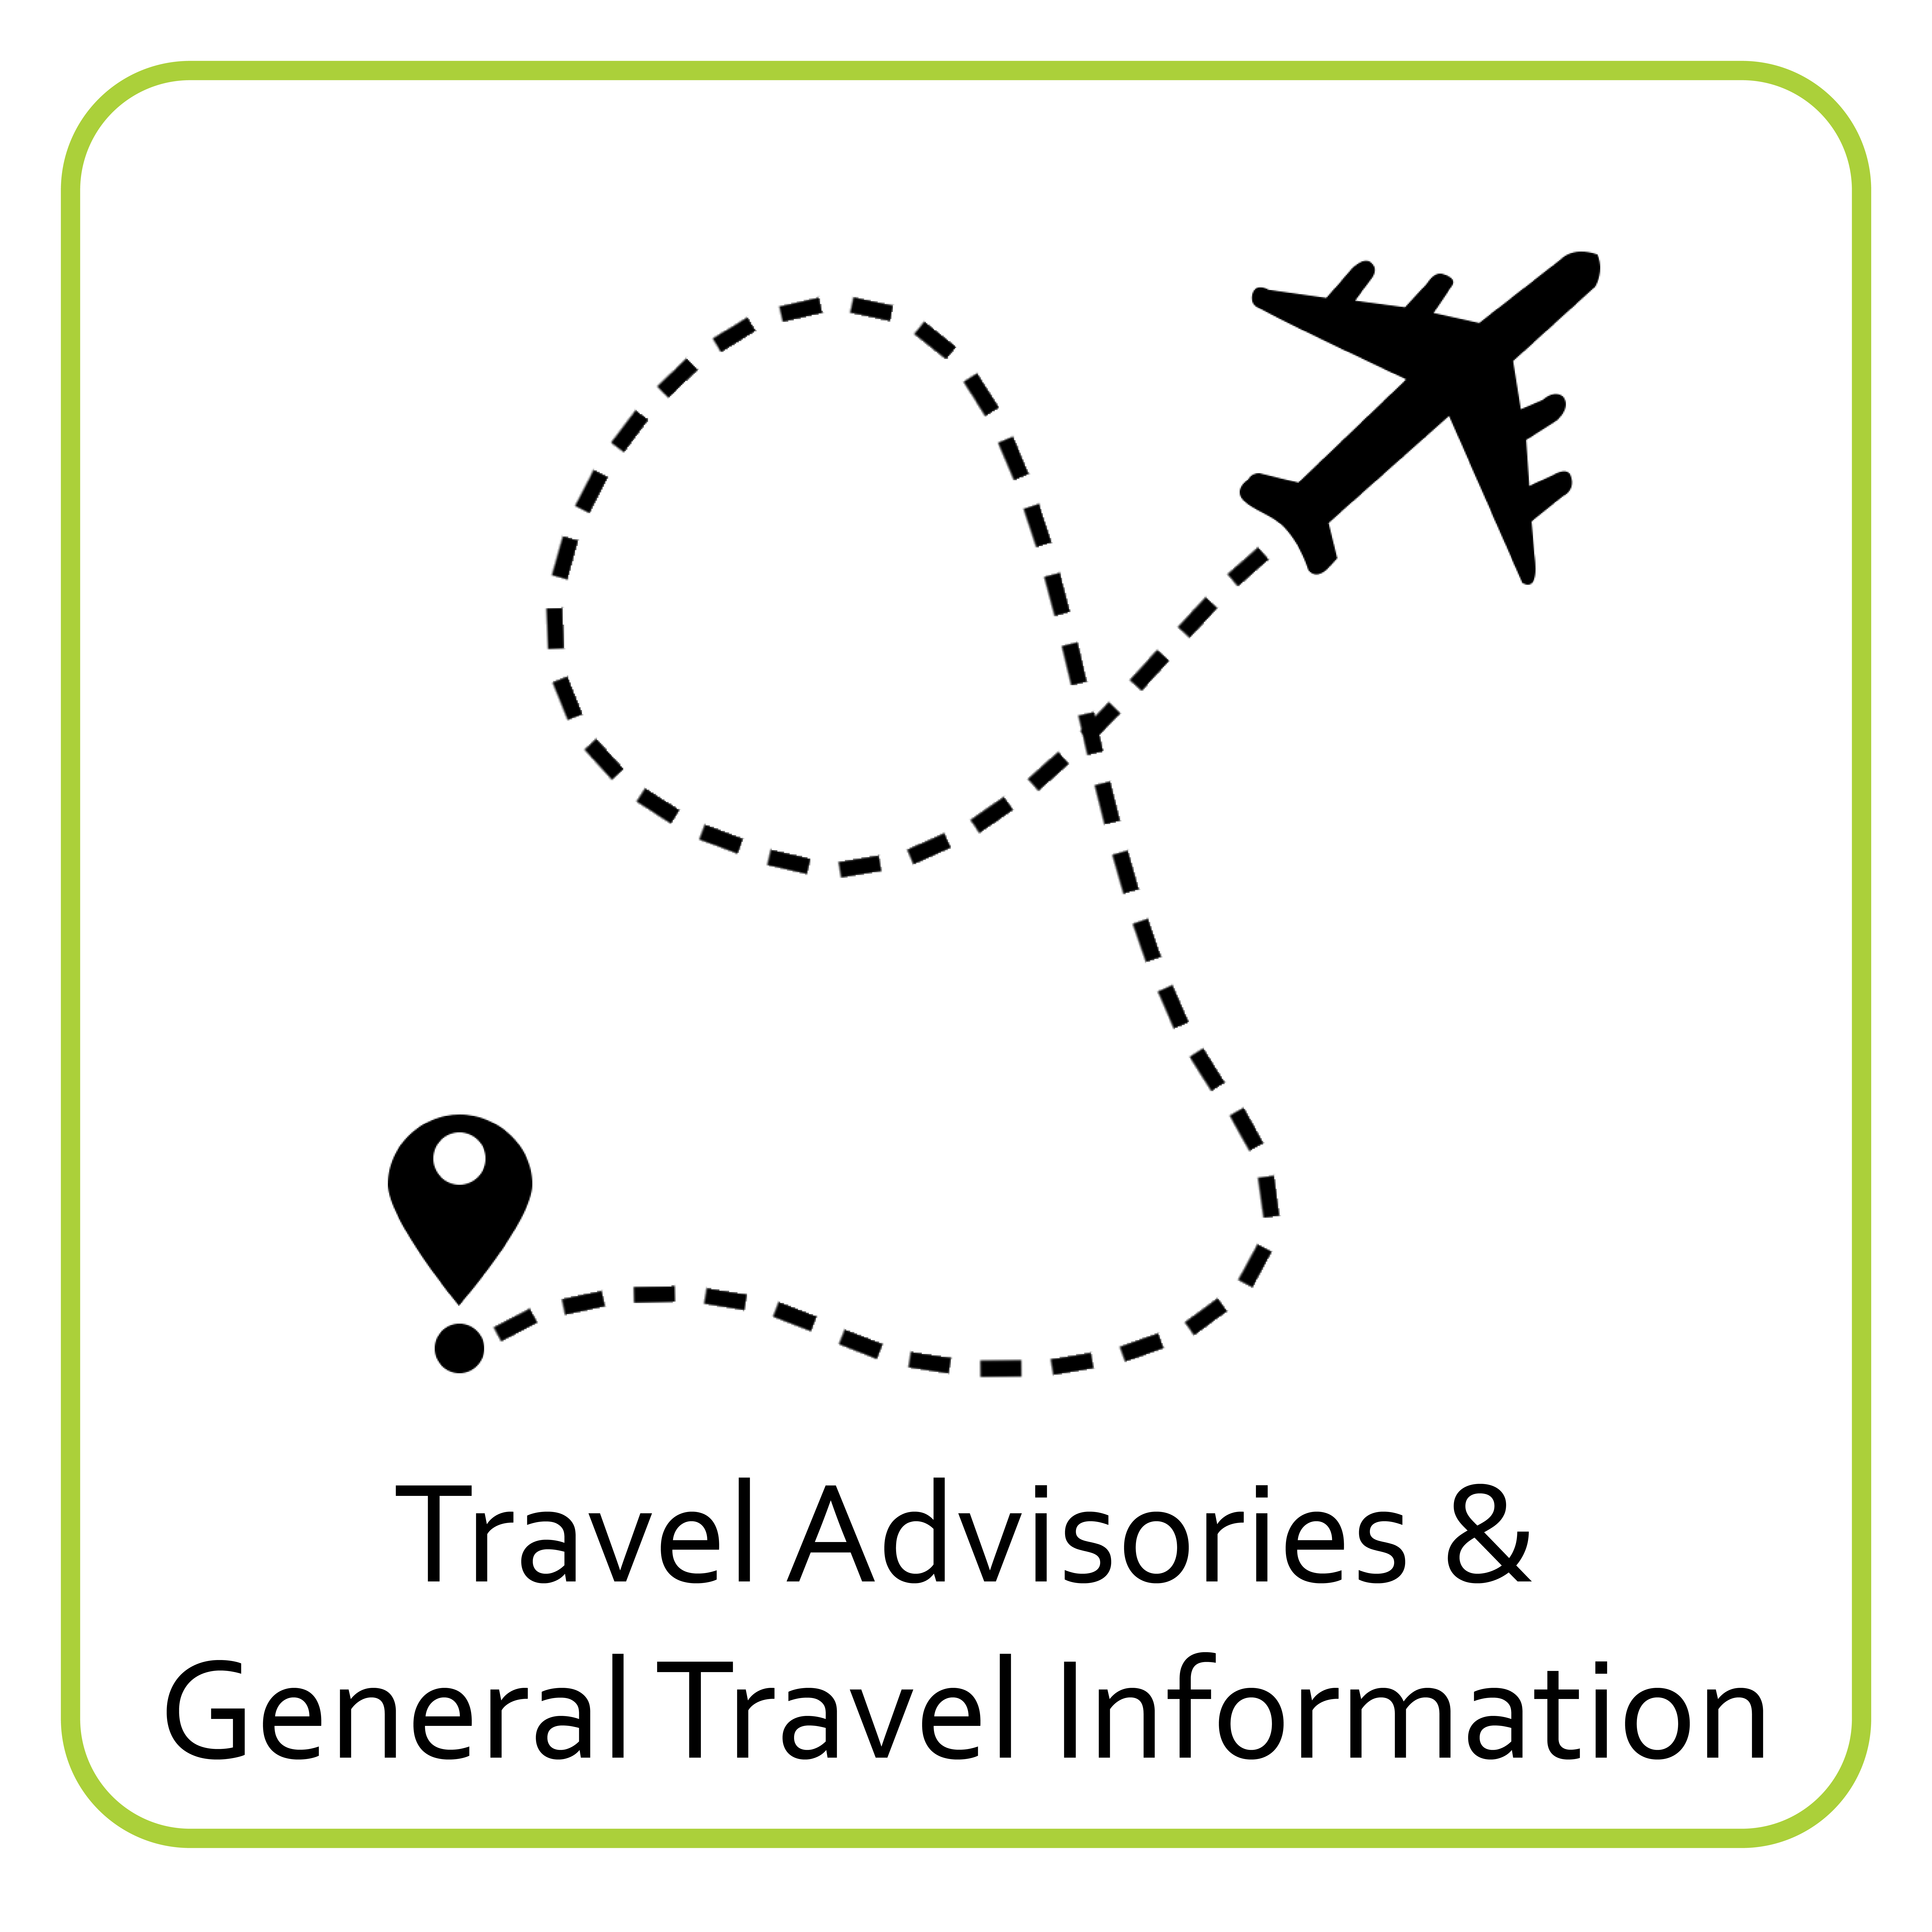 Travel advisories and information